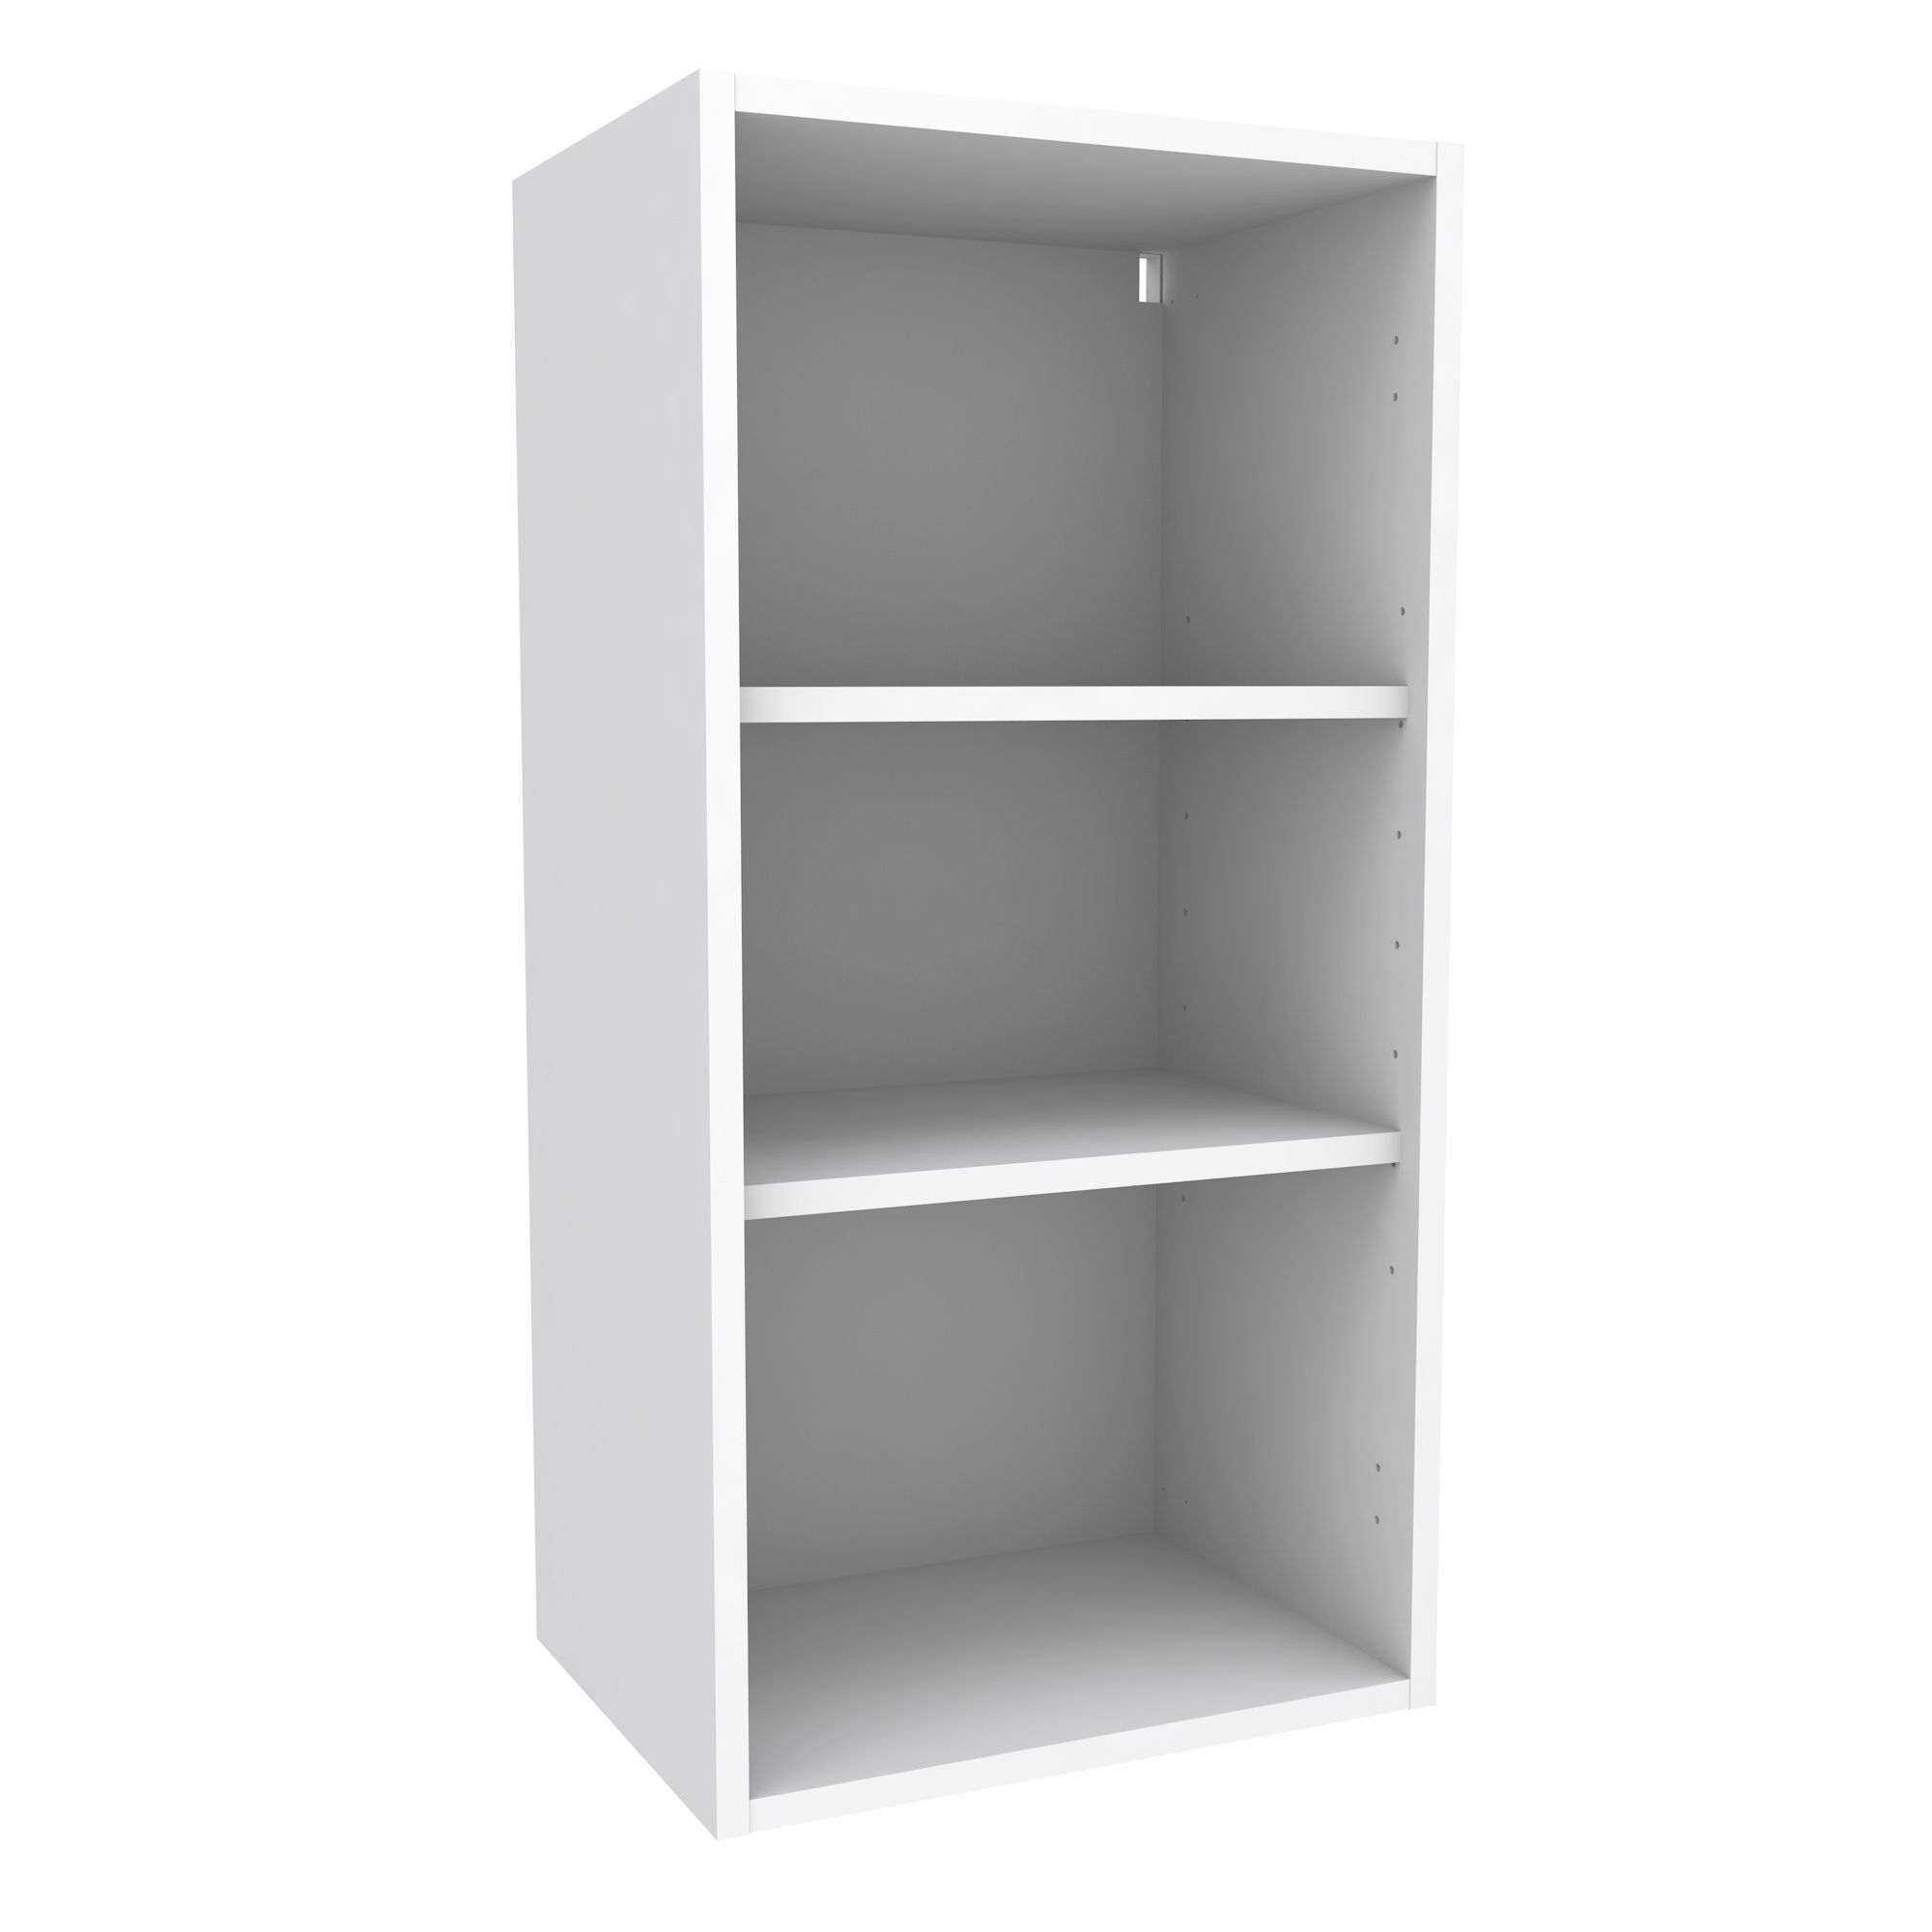 Cooke & Lewis White Standard Tall Wall Cabinet (w)450mm